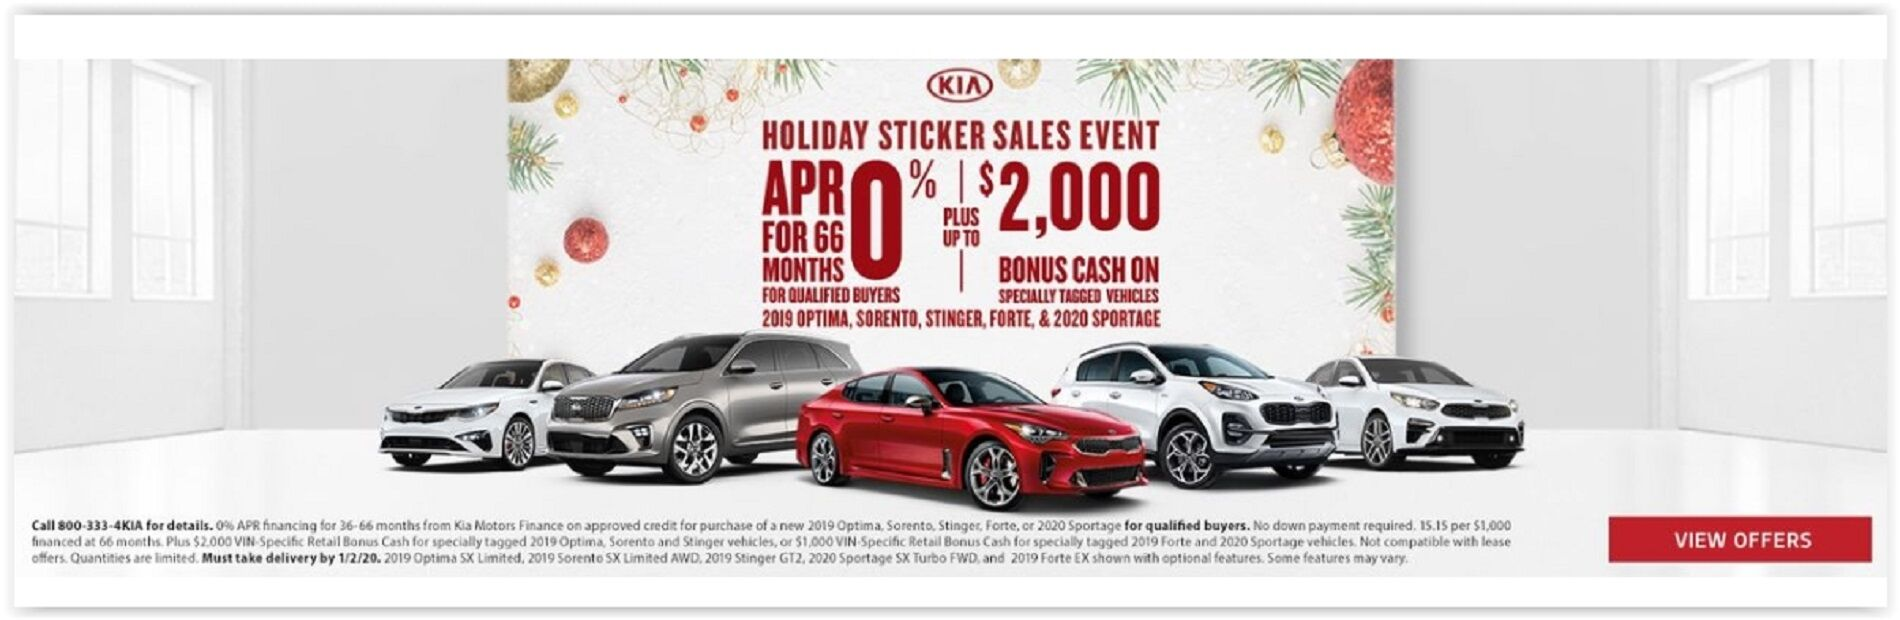 Kia Holiday Event